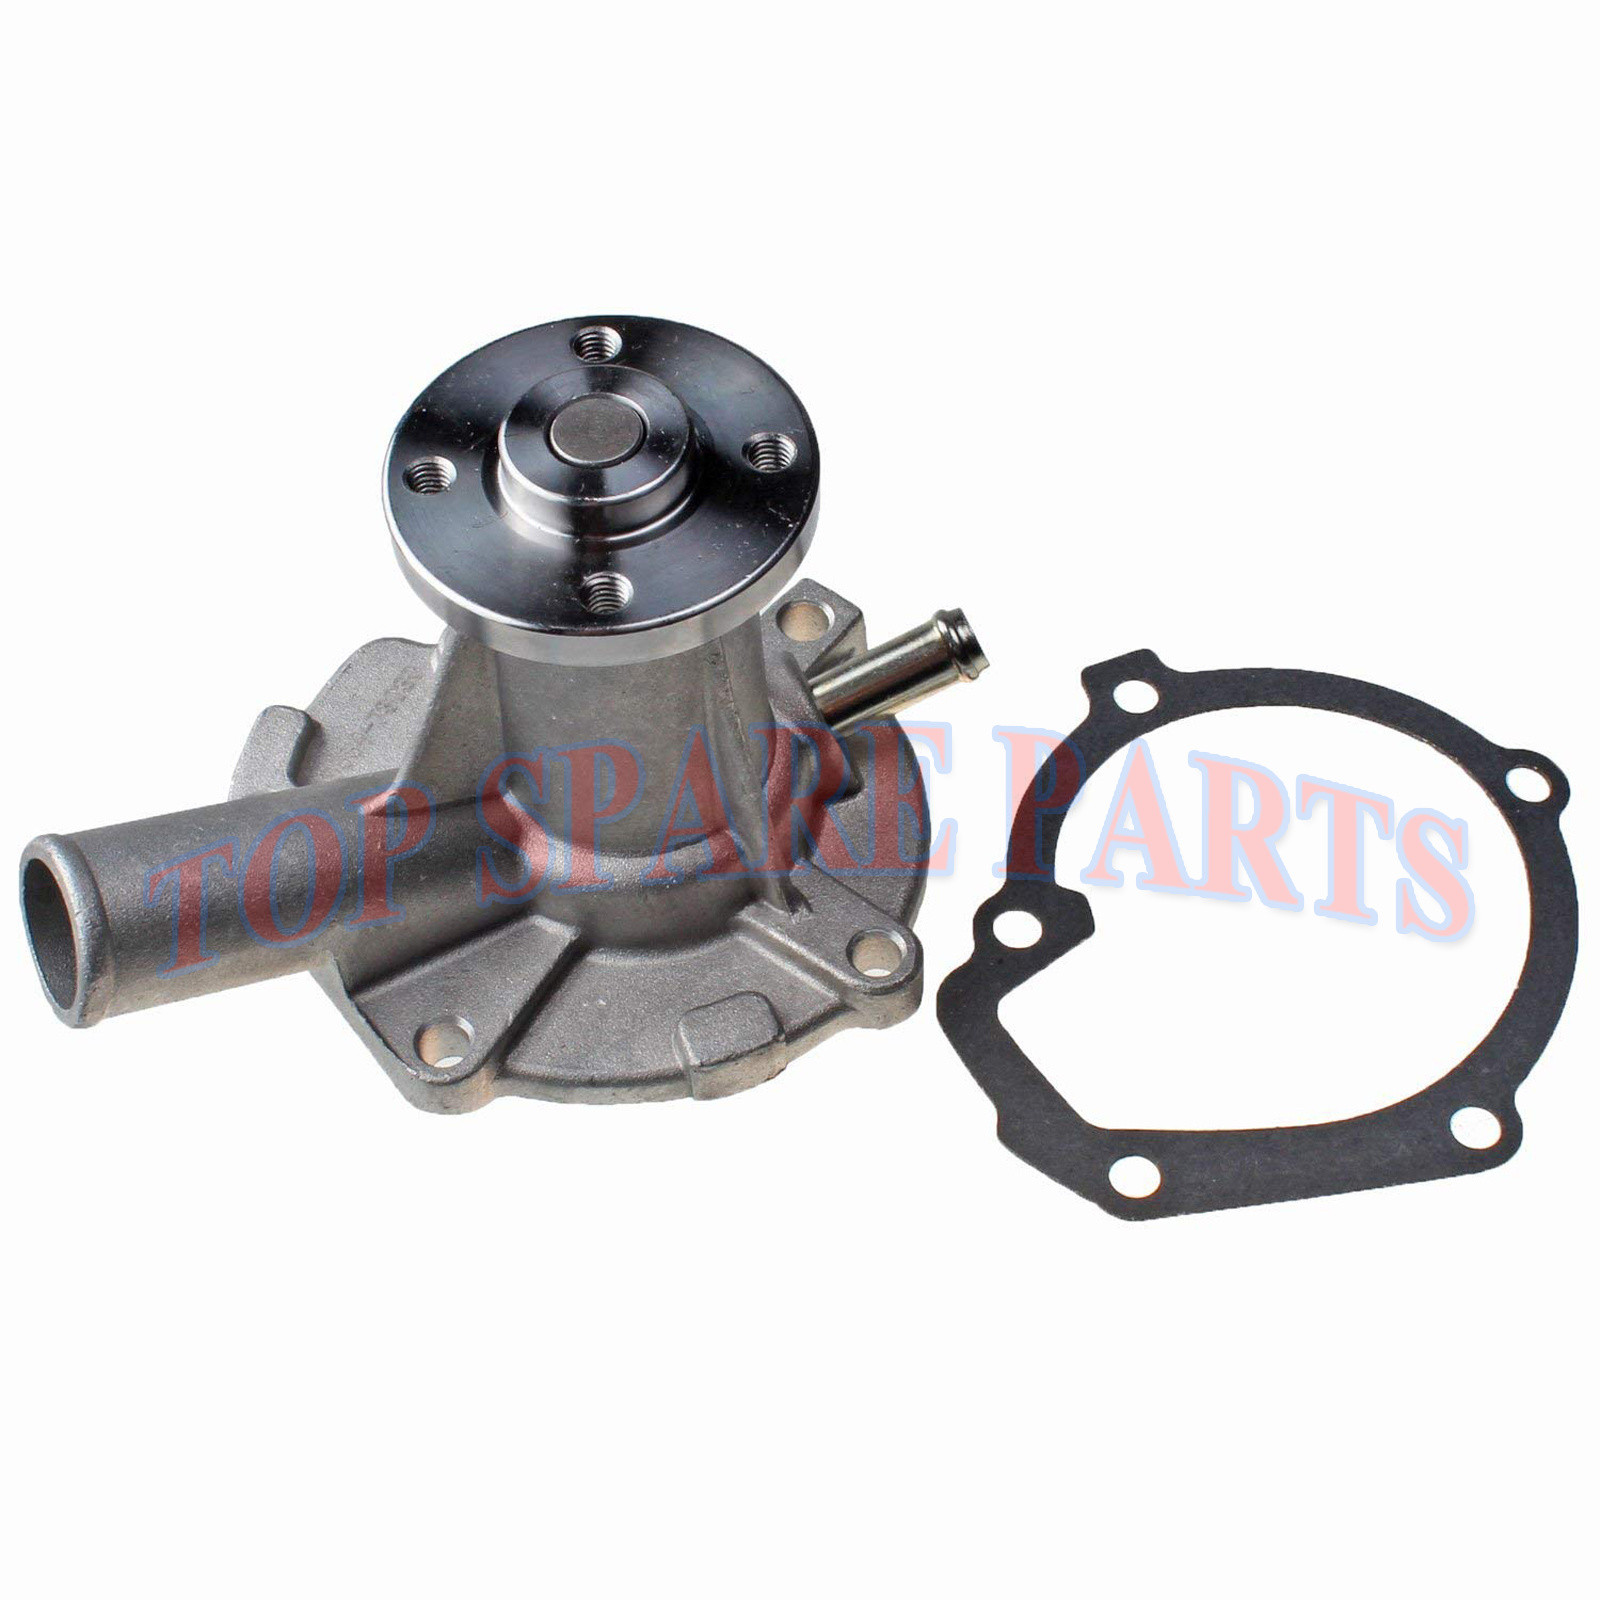 Water Pump with Gasket Fits Kubota Engine D750 D850 D950 Water ...